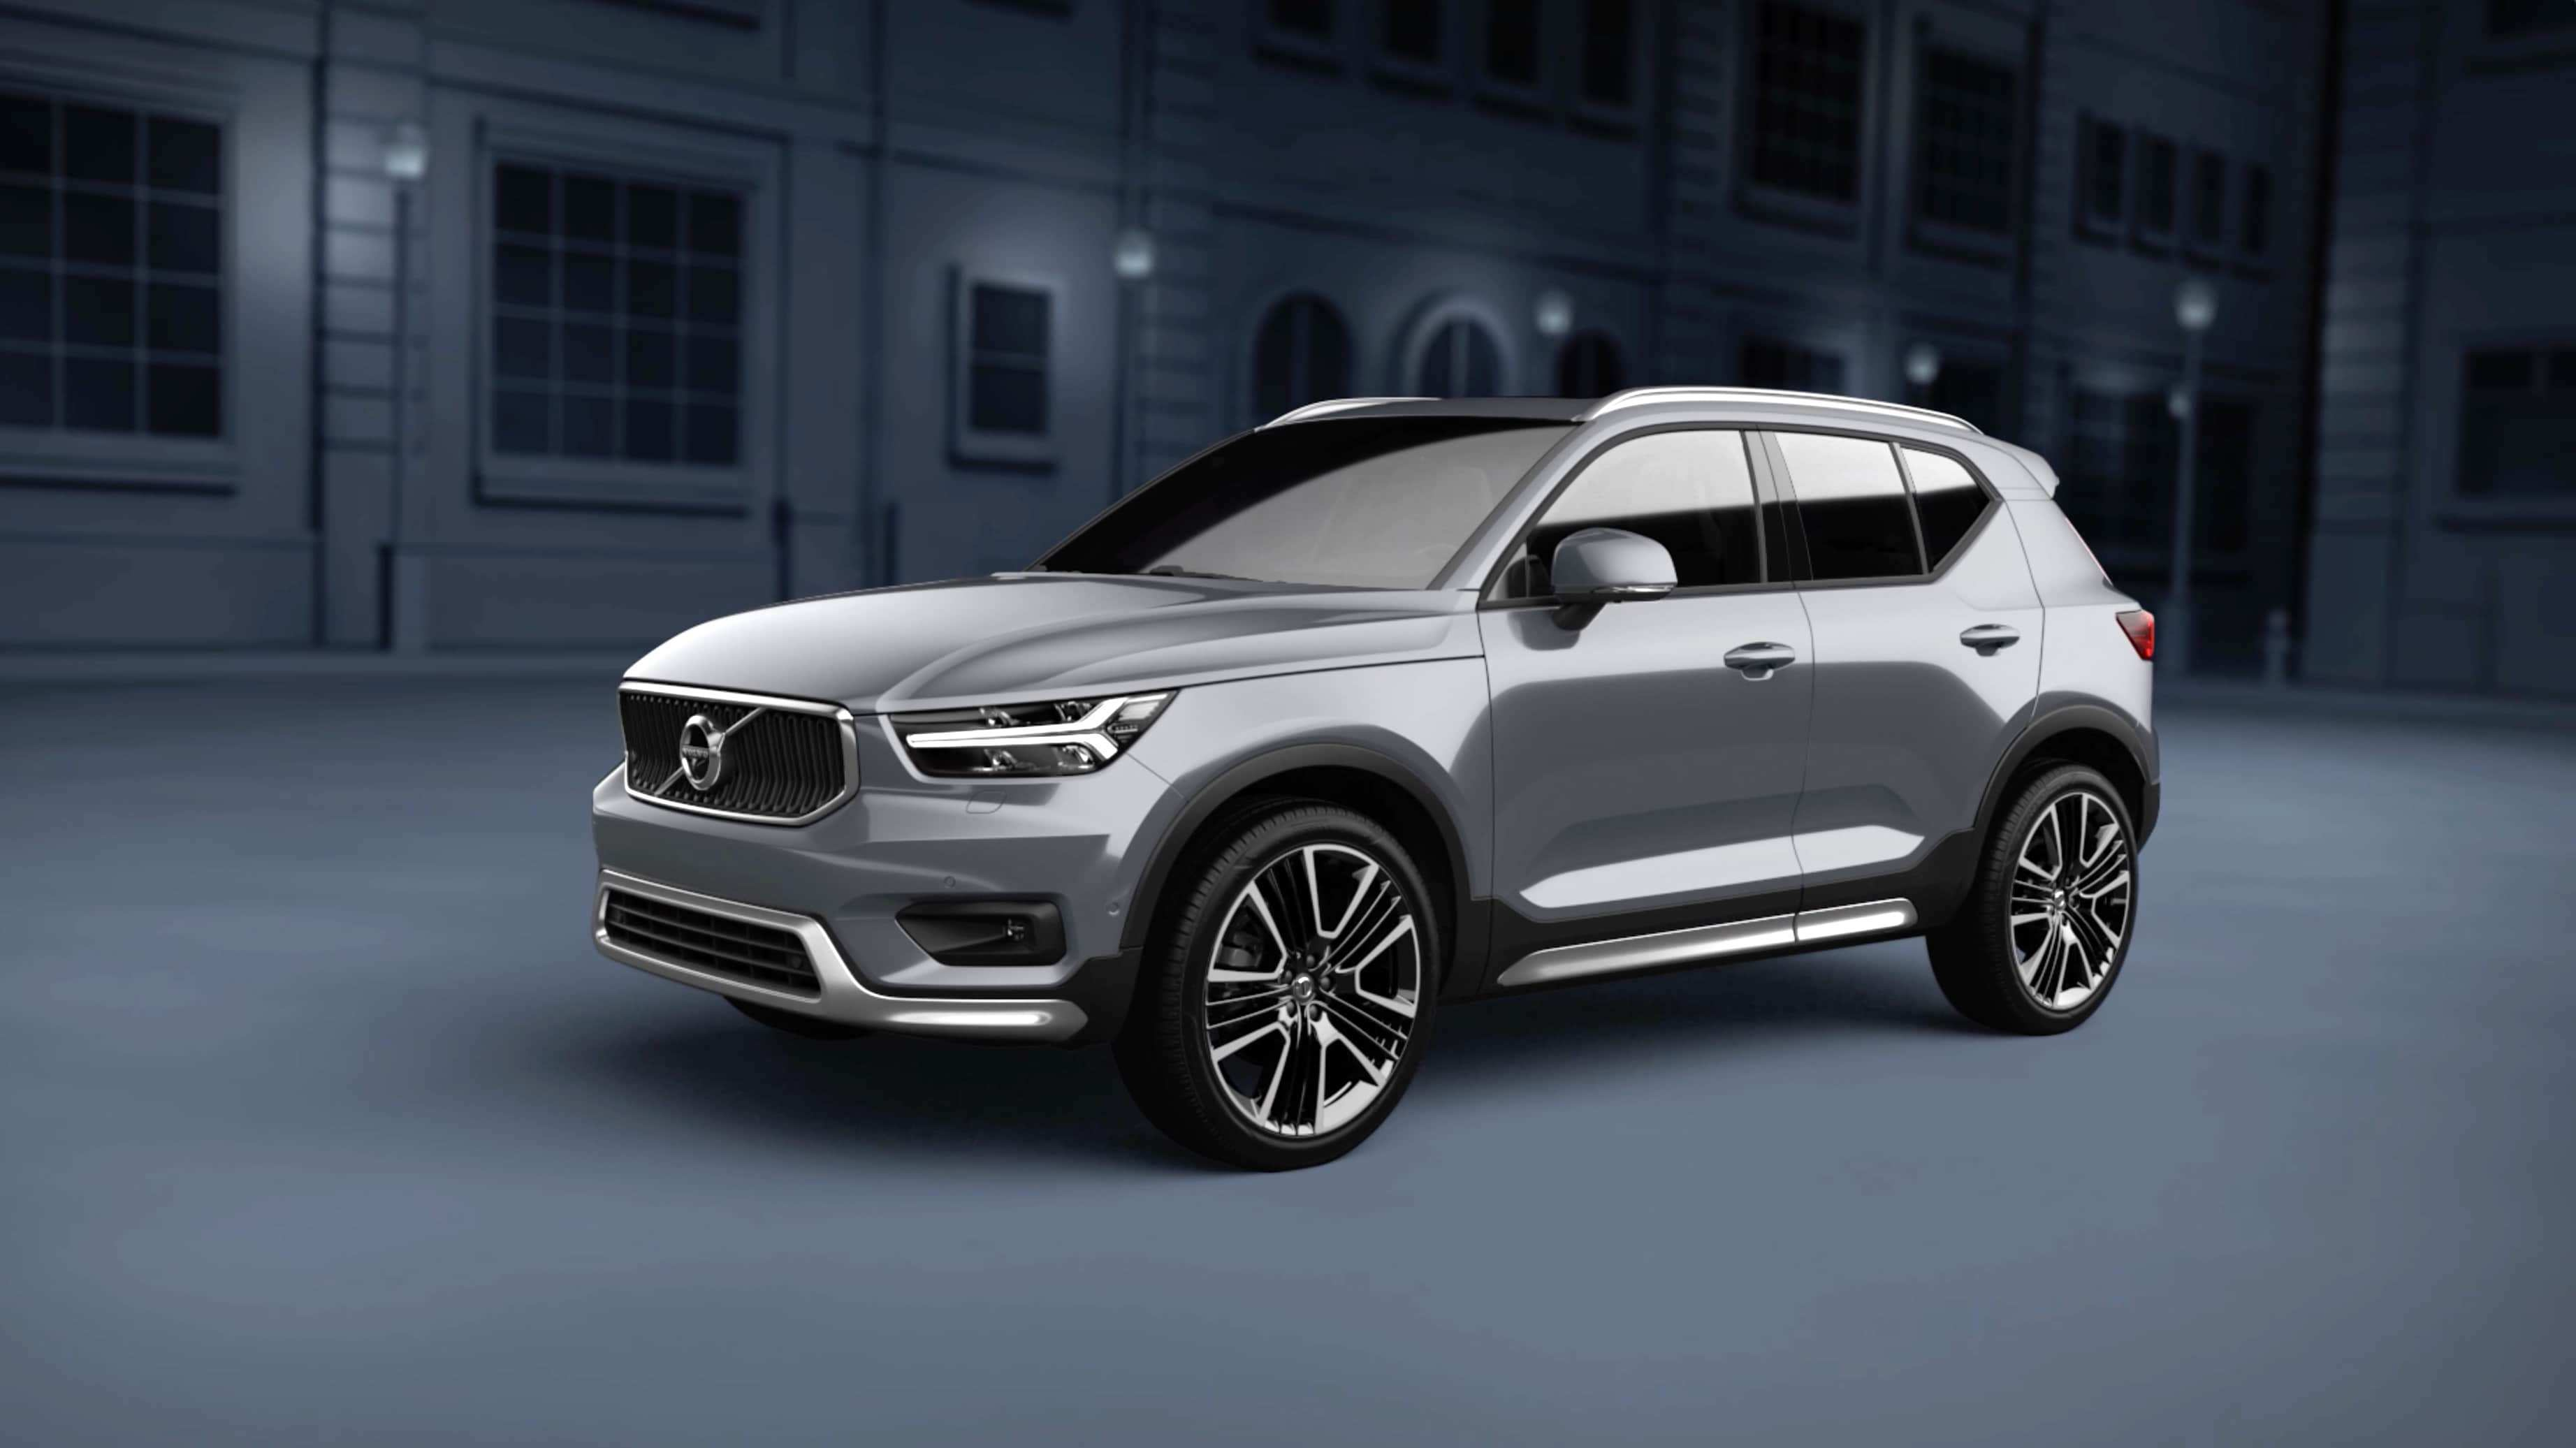 95 The Volvo 2020 Xc40 Exterior Release Date with Volvo 2020 Xc40 Exterior